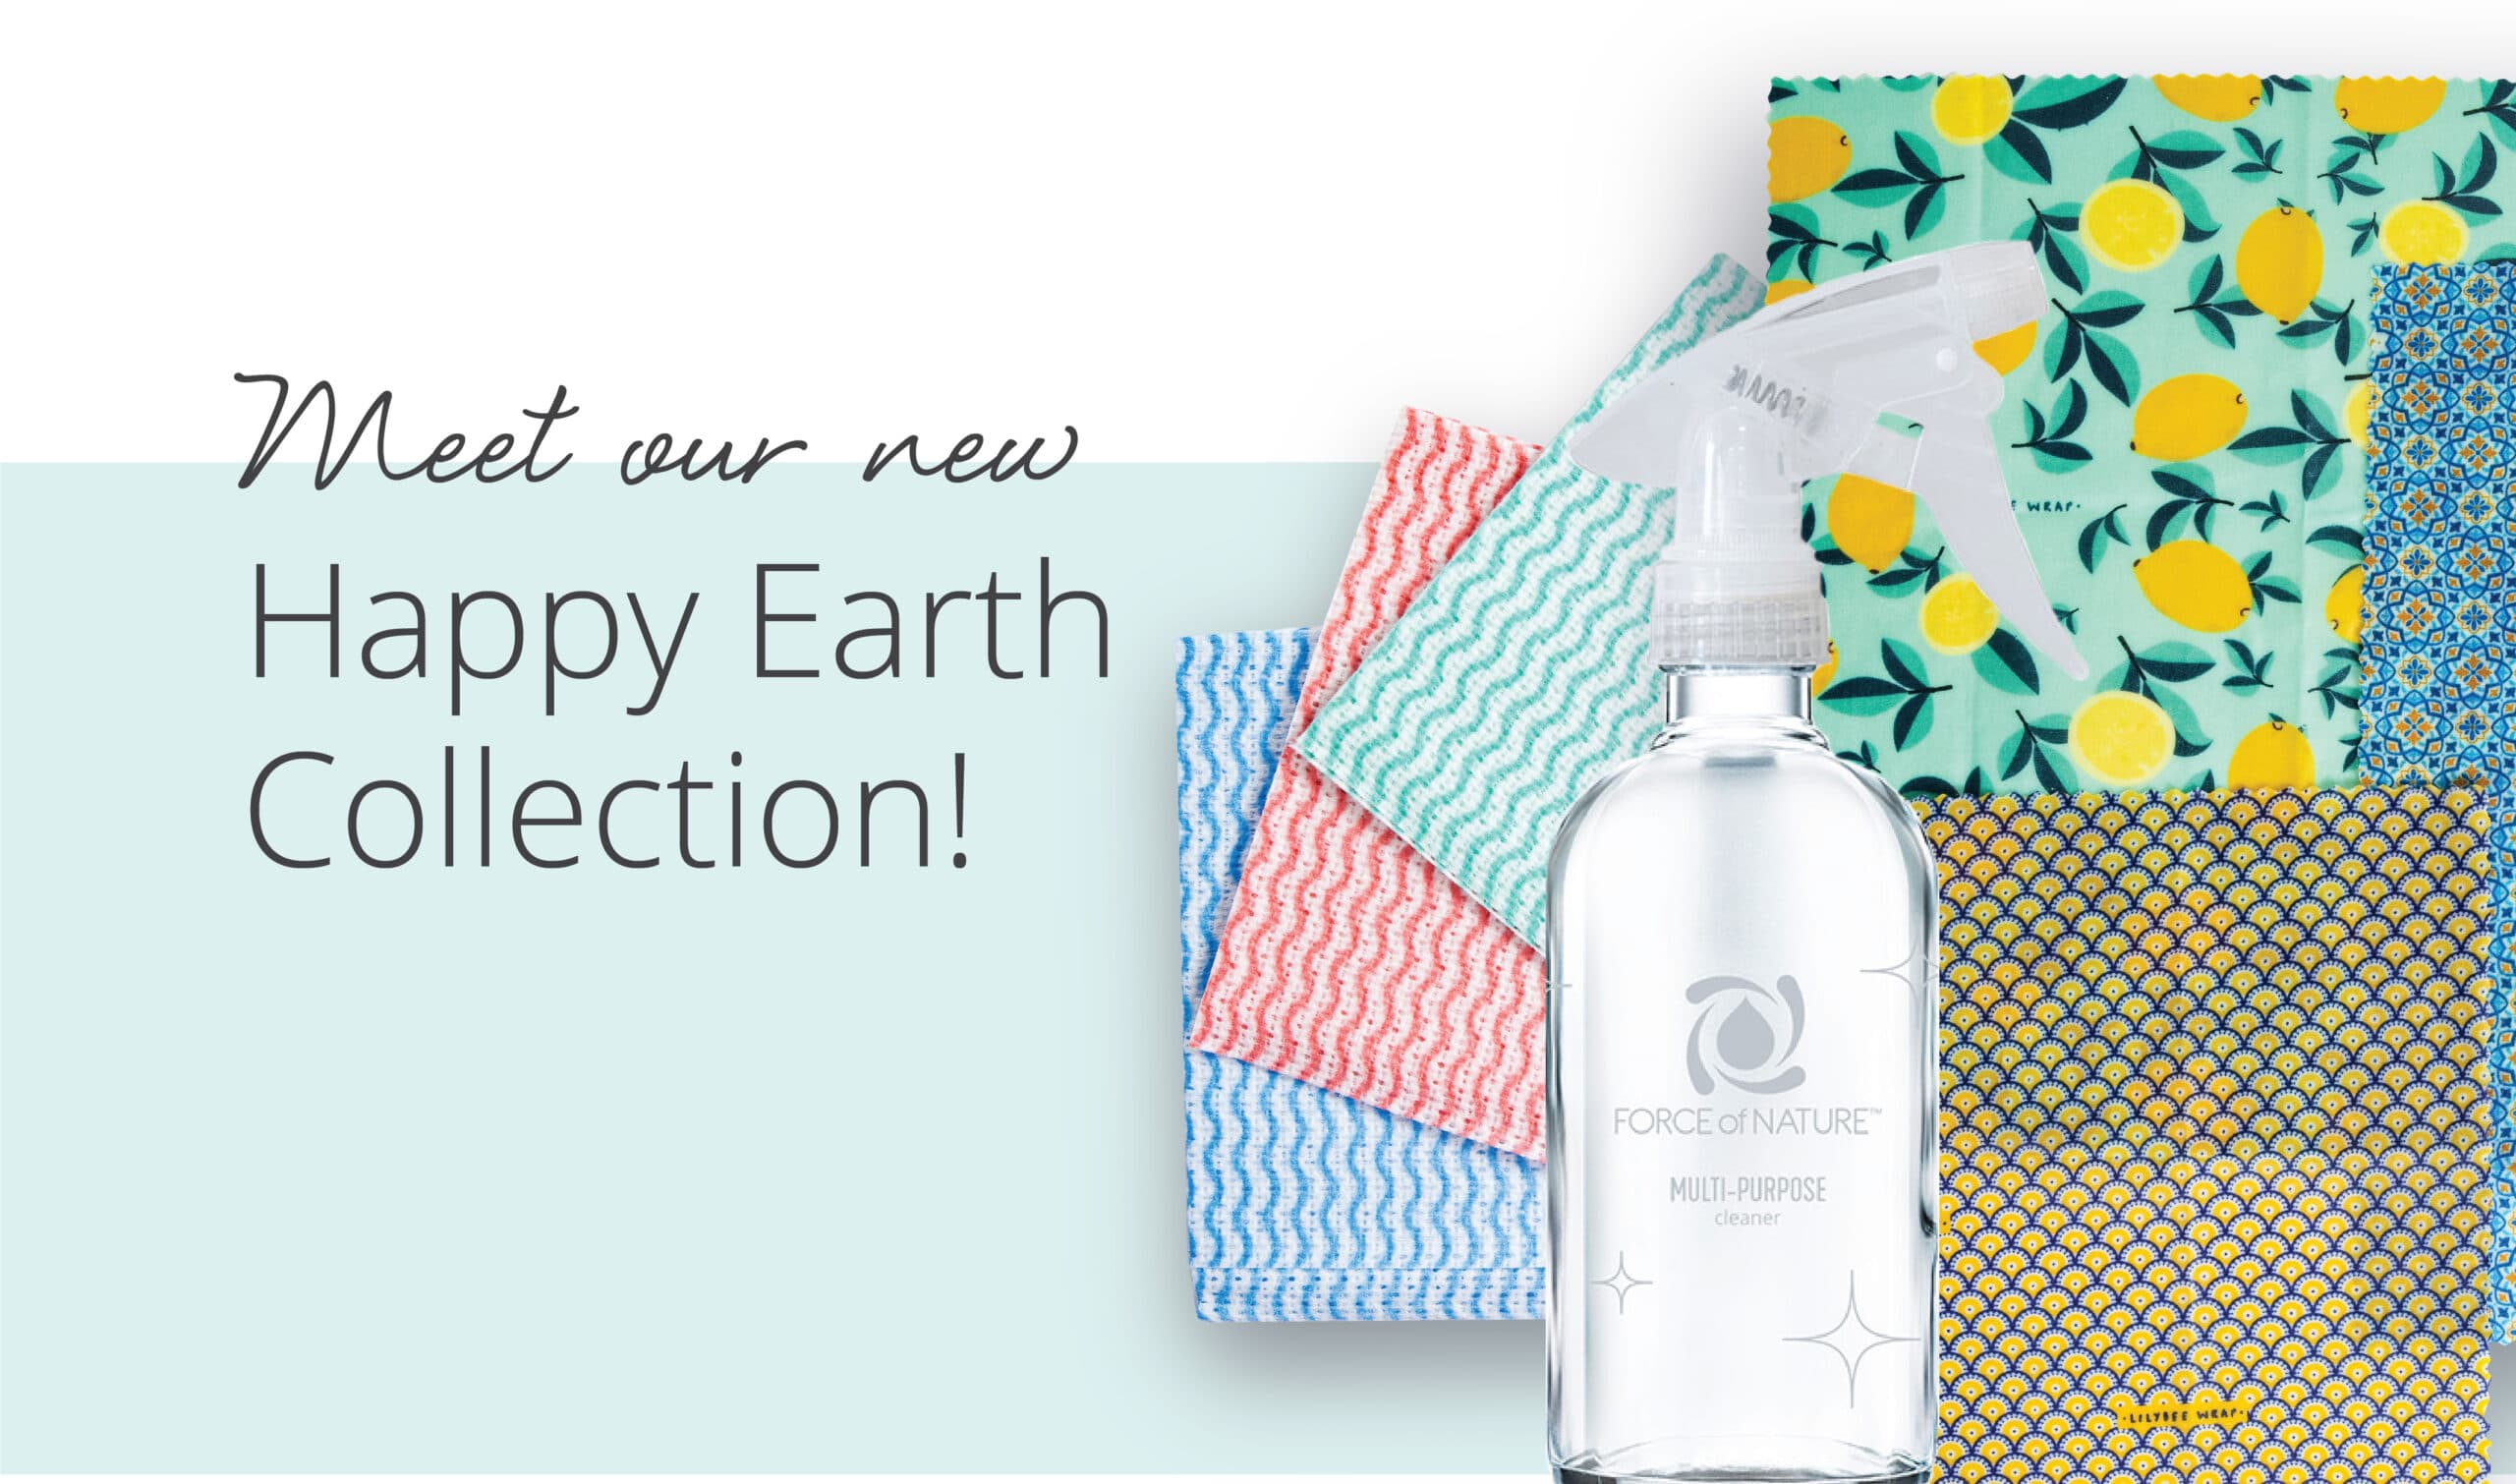 The new Force of Nature Happy Earth Collection